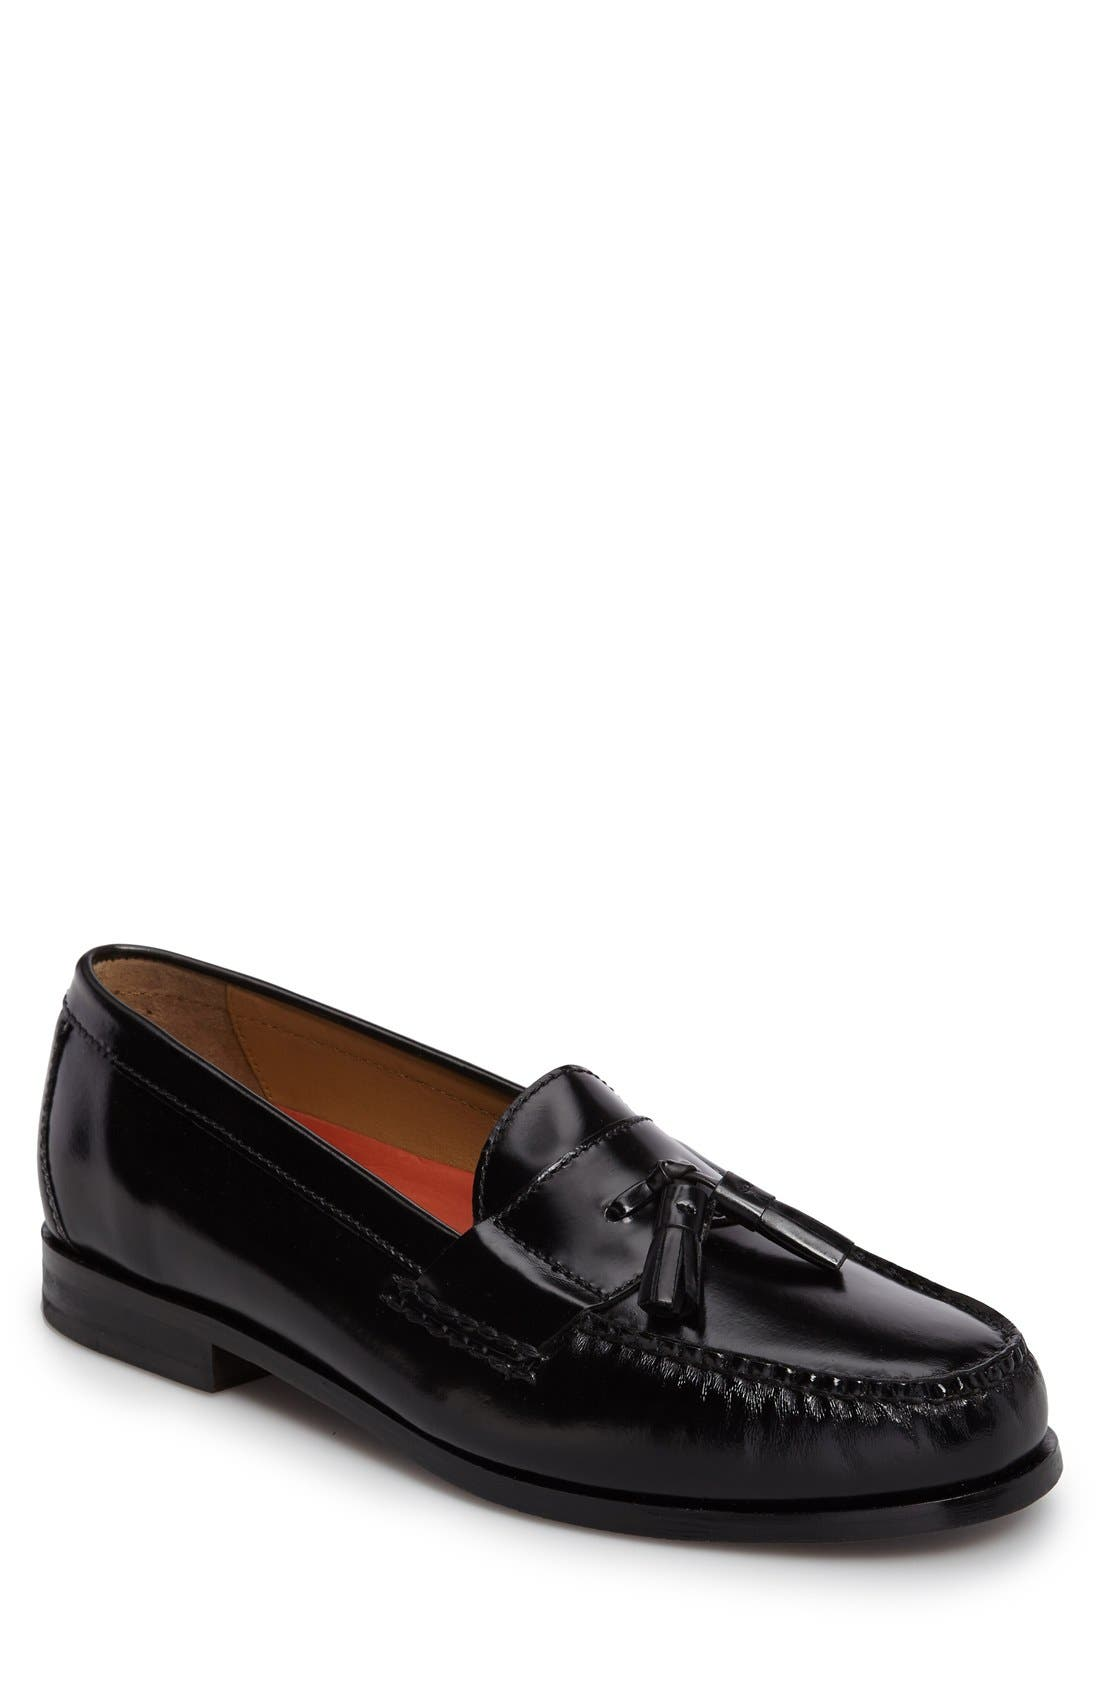 Main Image - Cole Haan 'Pinch Grand' Tassel Loafer (Men)